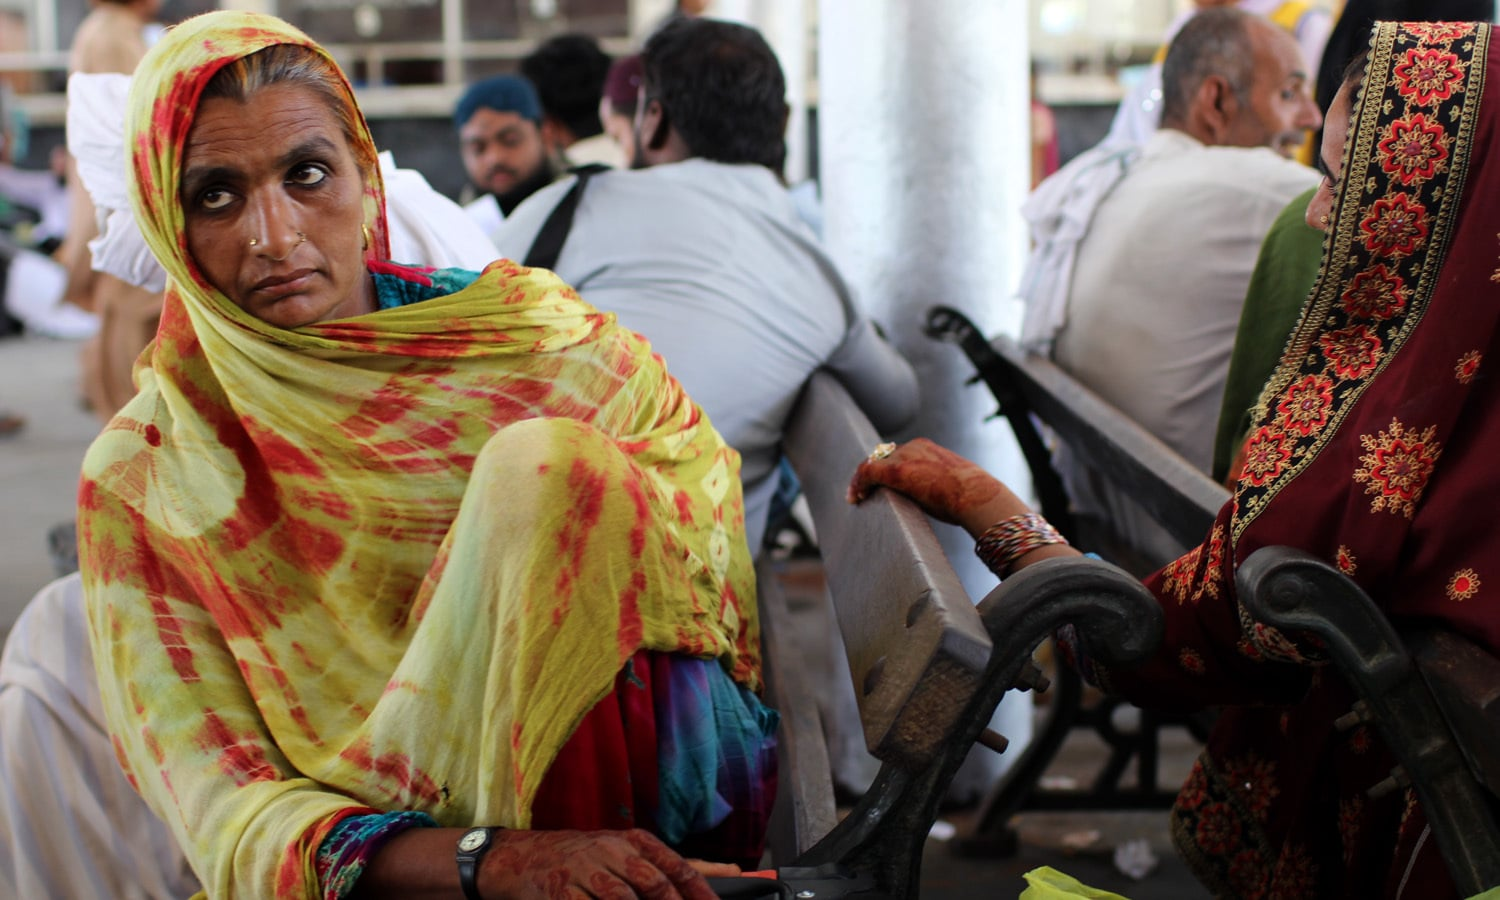 A woman awaits her husband who is in a ticket queue.